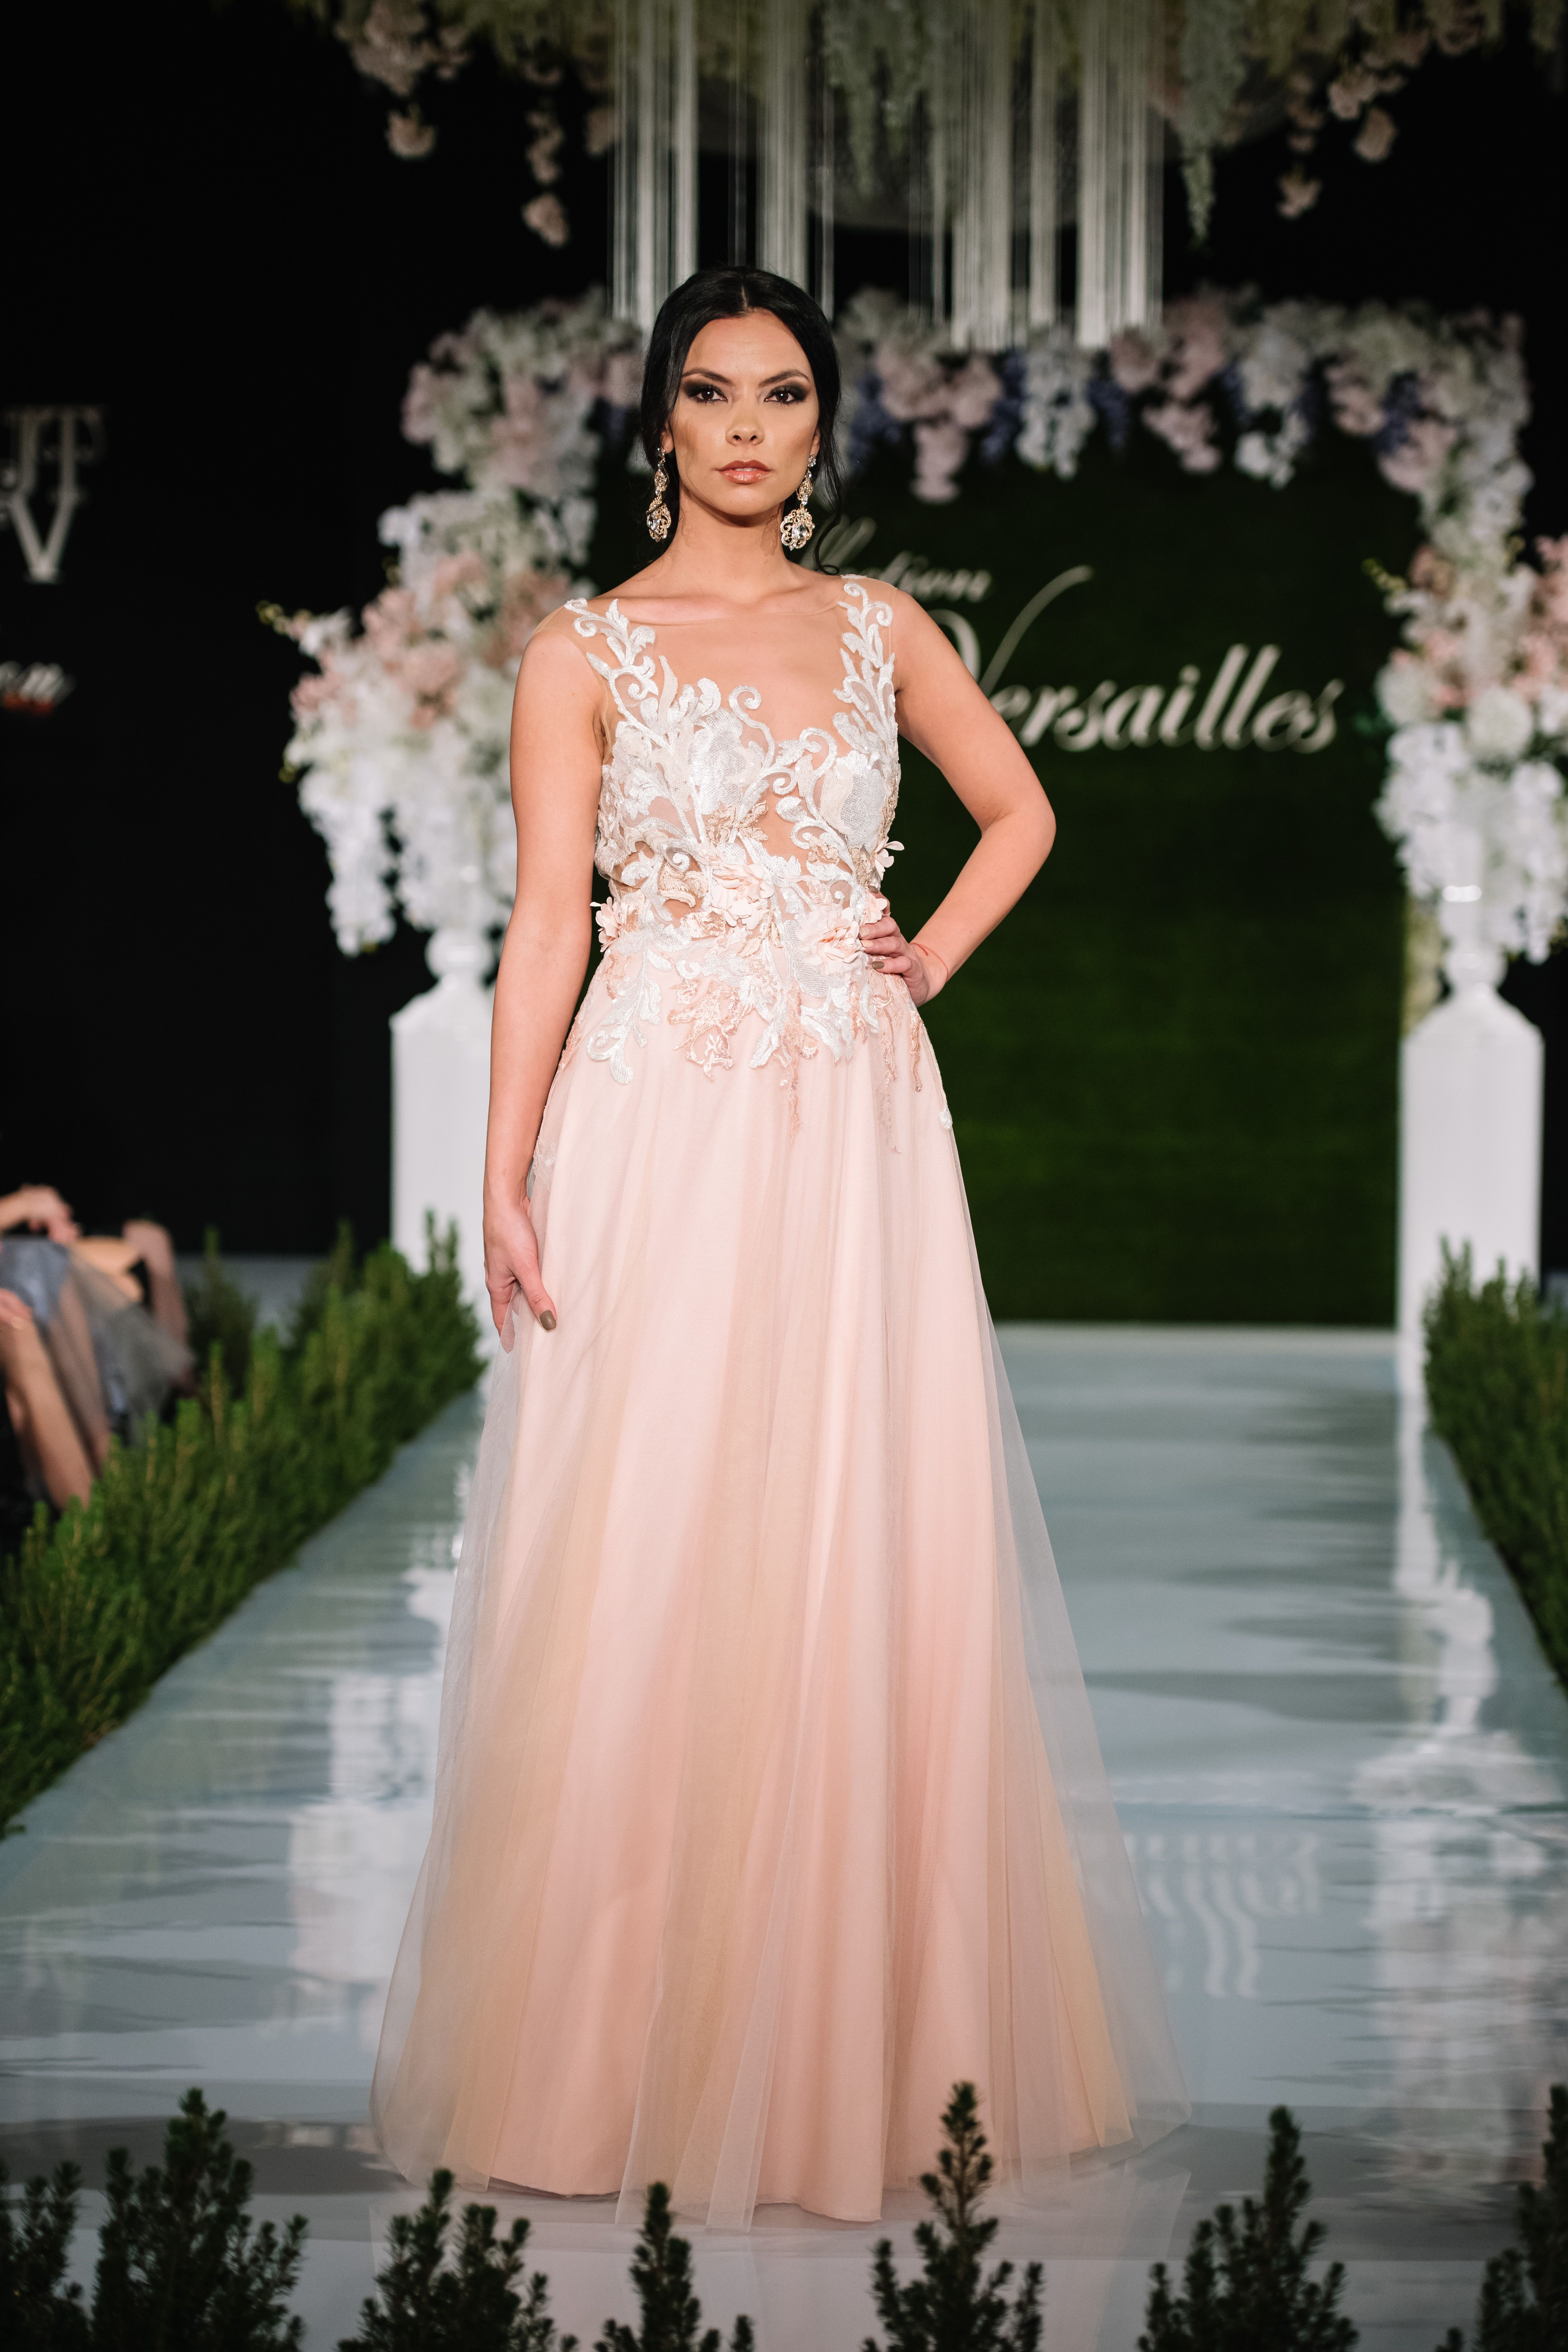 Ball gown, soft peach color , lace decoration, stones, tulle, A line ...